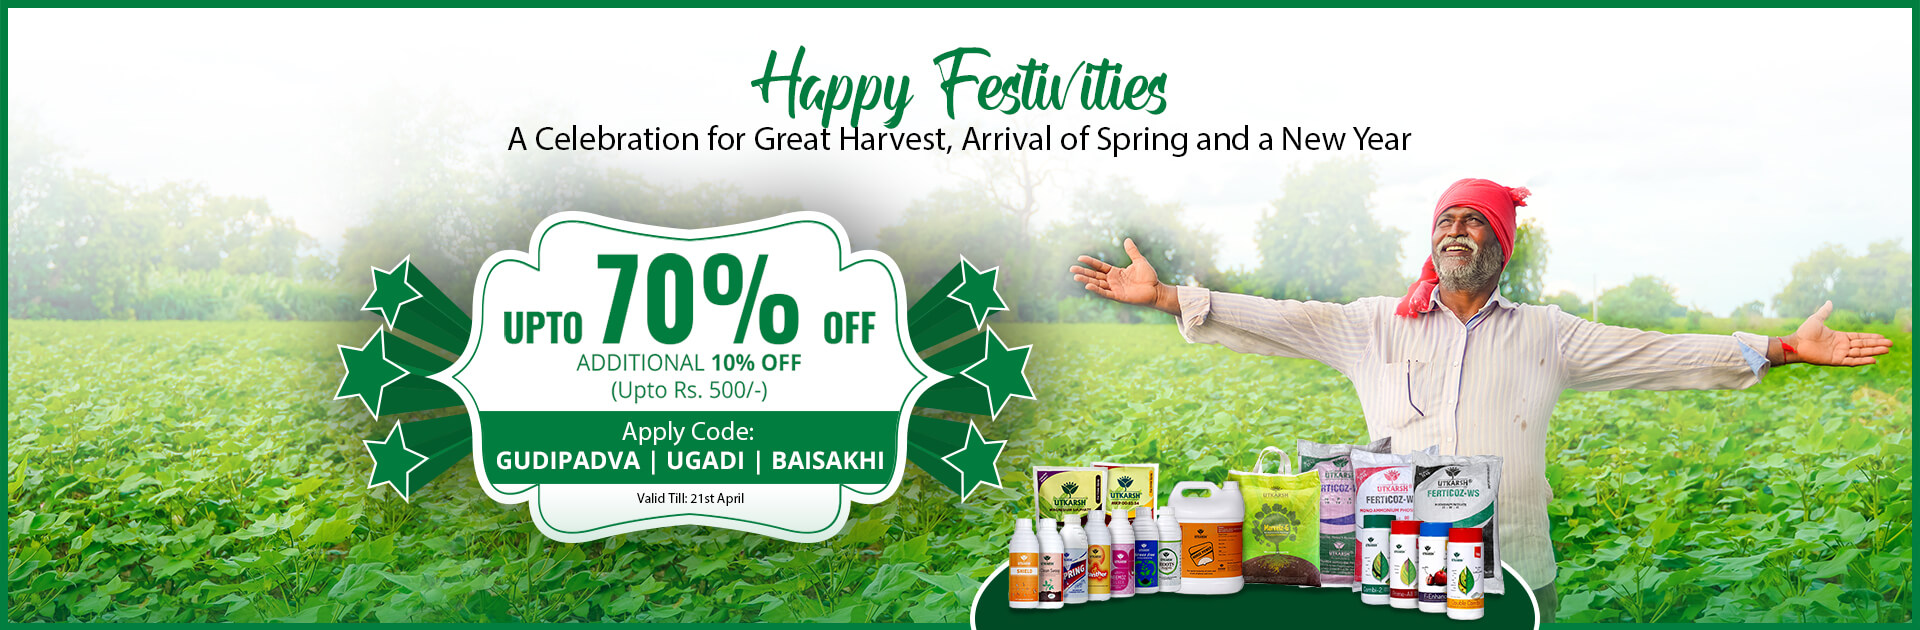 Baisakhi Gudi Padva and Ugadi Festival - Upto 70% off + Additional 10% off (upto Rs. 500)